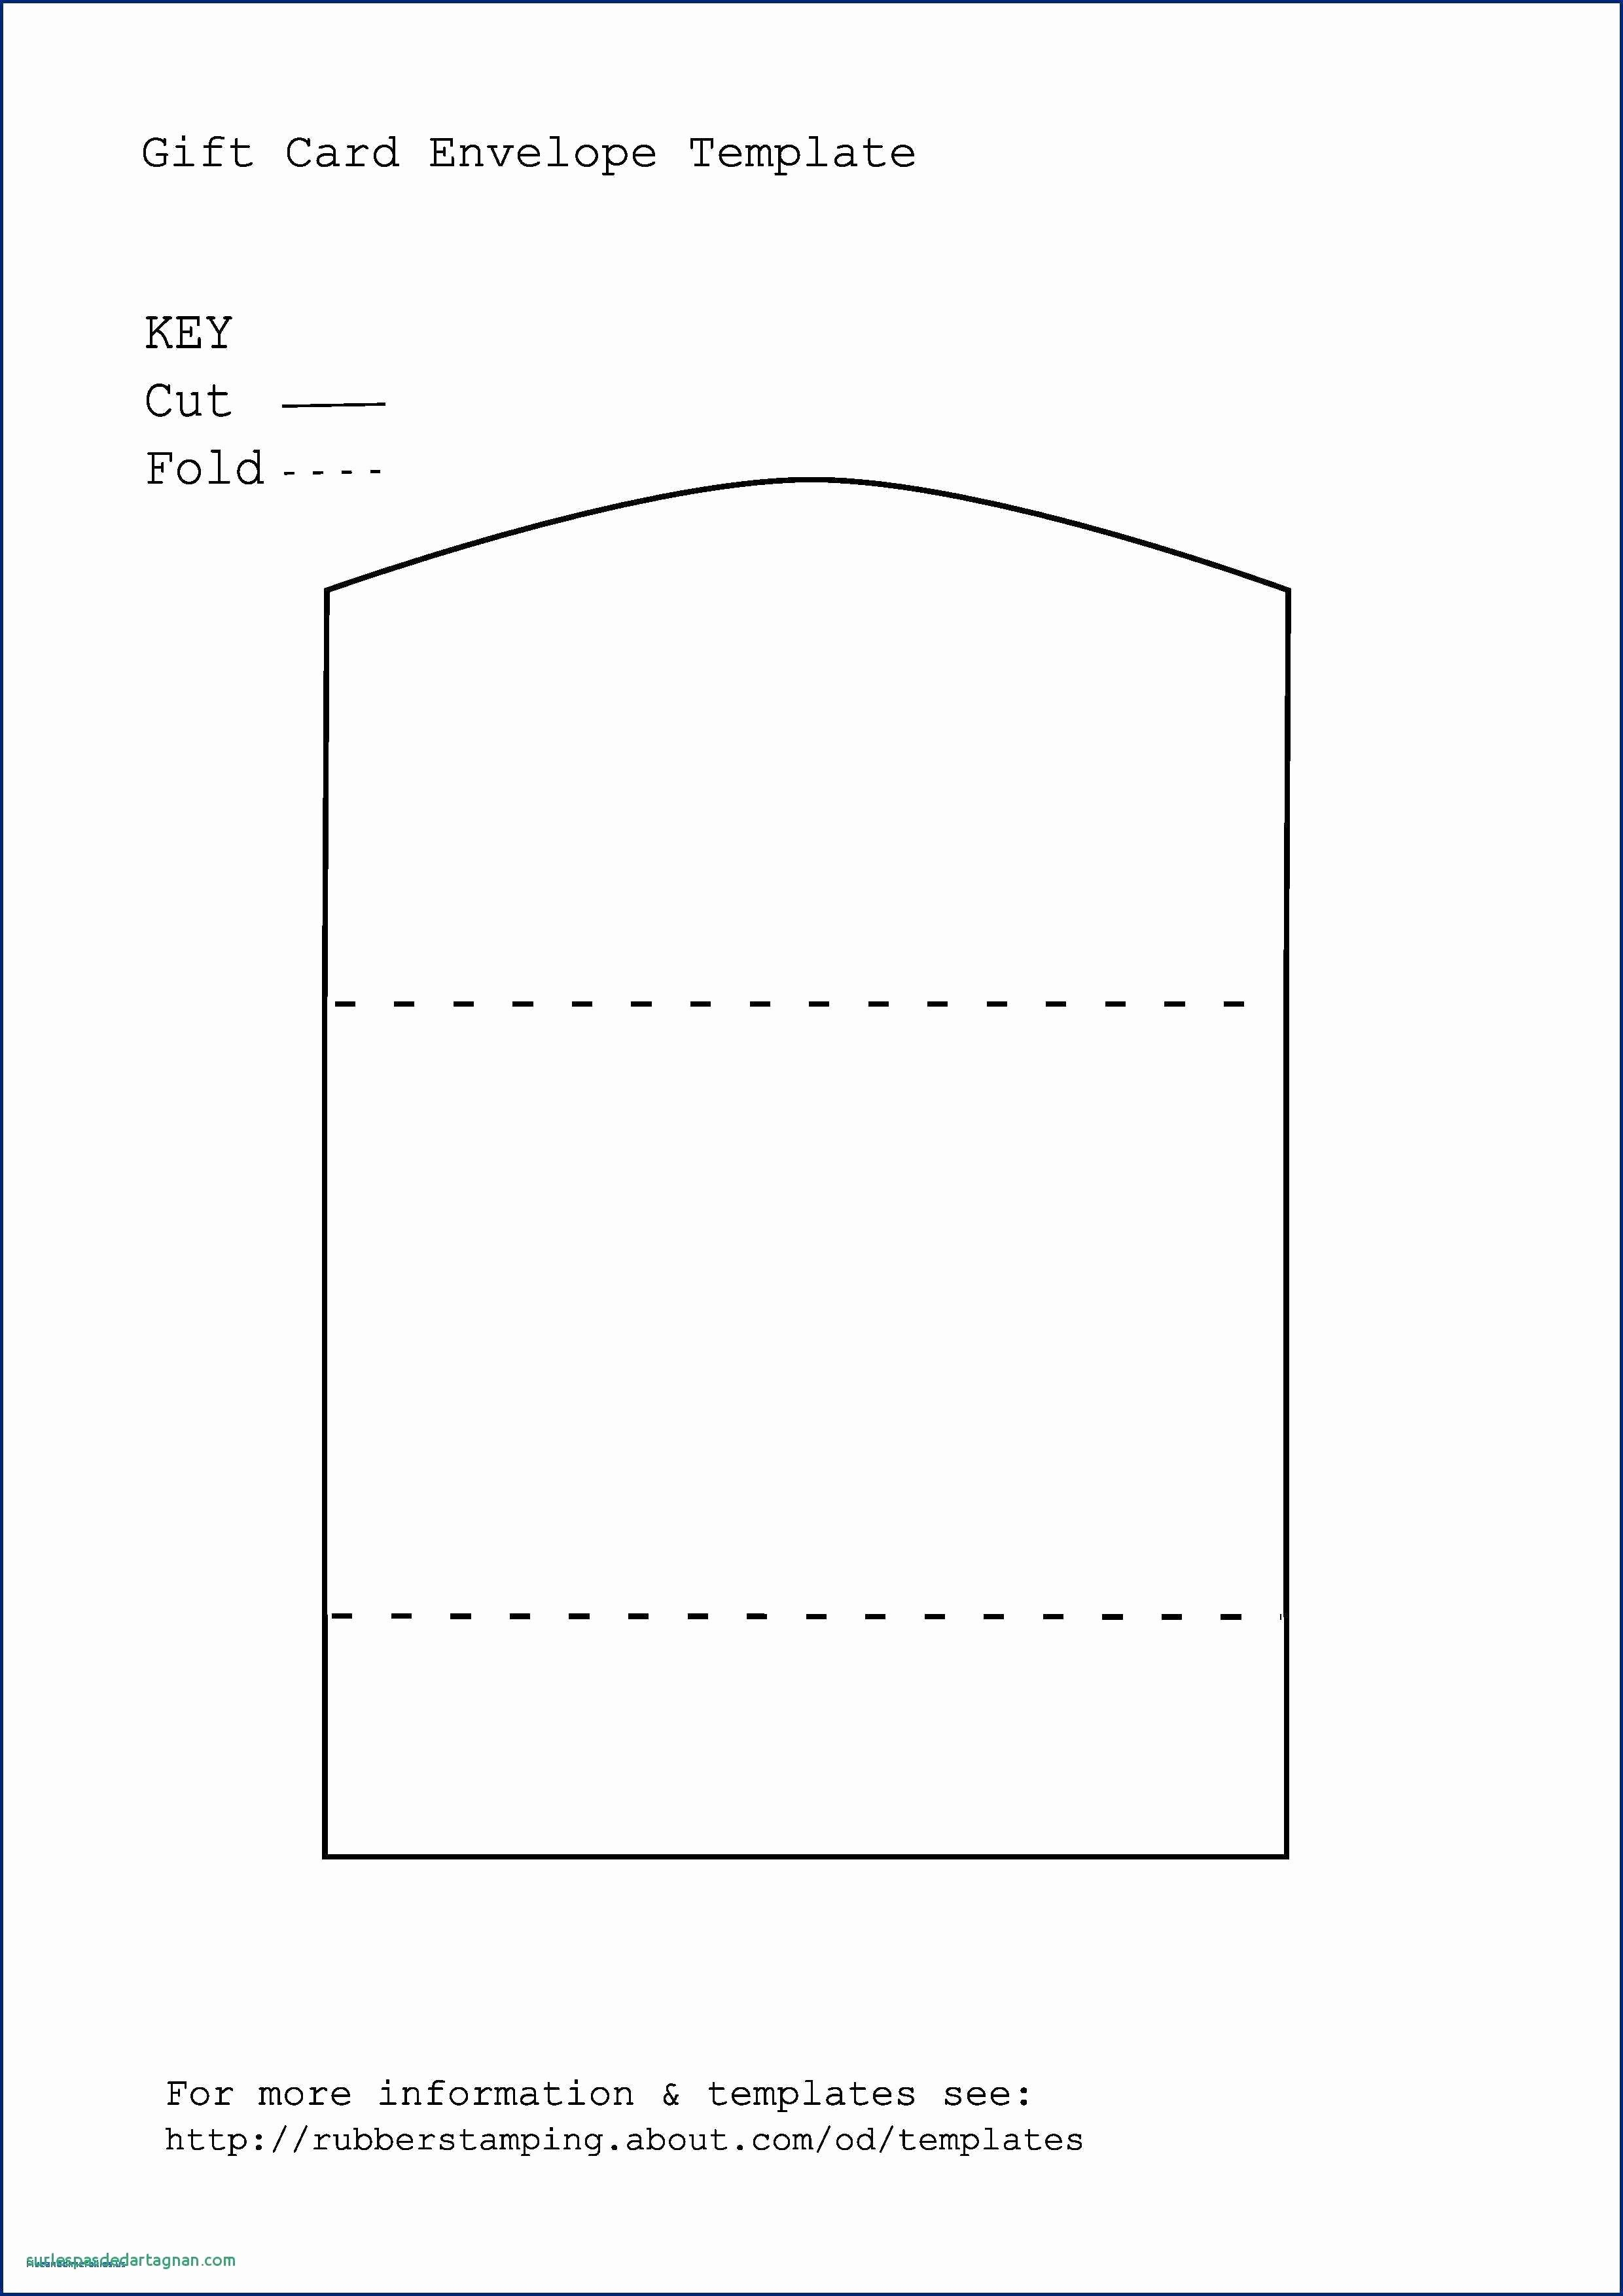 Msds Template Fresh Osha Sds Template Types Attending Hmis Label Throughout Hmis Label Template